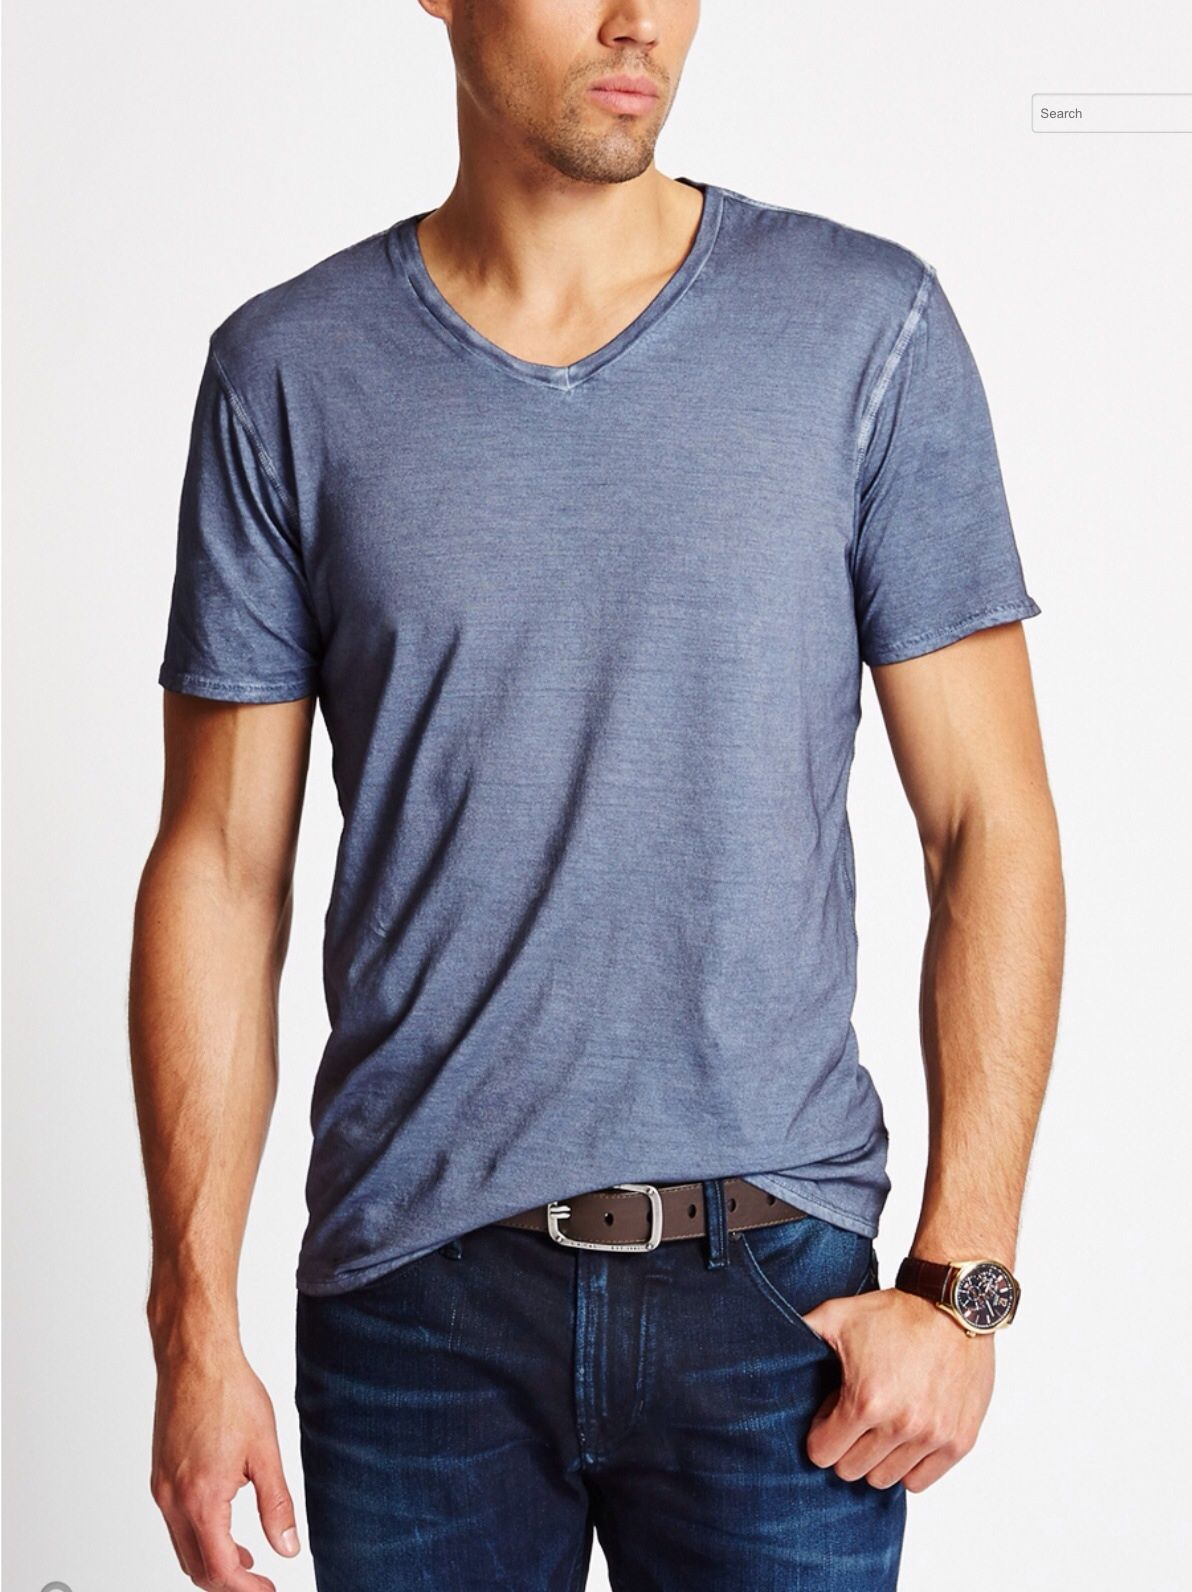 Flannel shirt with shorts men  GUNNAR VNECK WASHED TEE by GUESS  Zócalo Denim Co  Pinterest